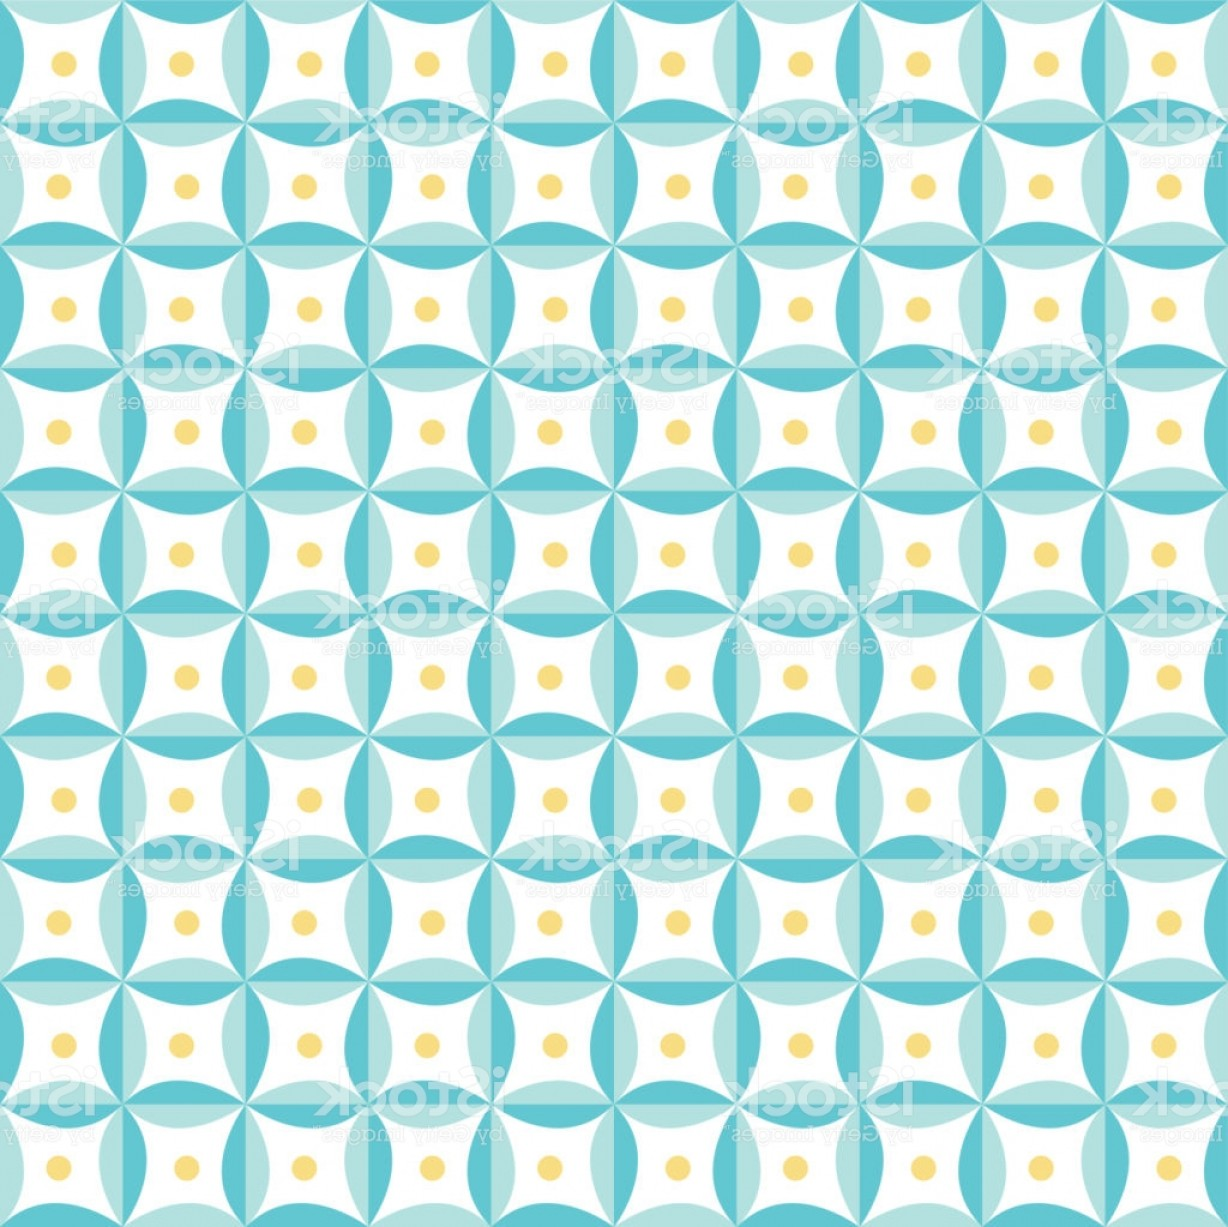 Aqua Victorian Vectors: Ornamental Victorian Seamless Pattern Vector Floral Abstract Texture Gm